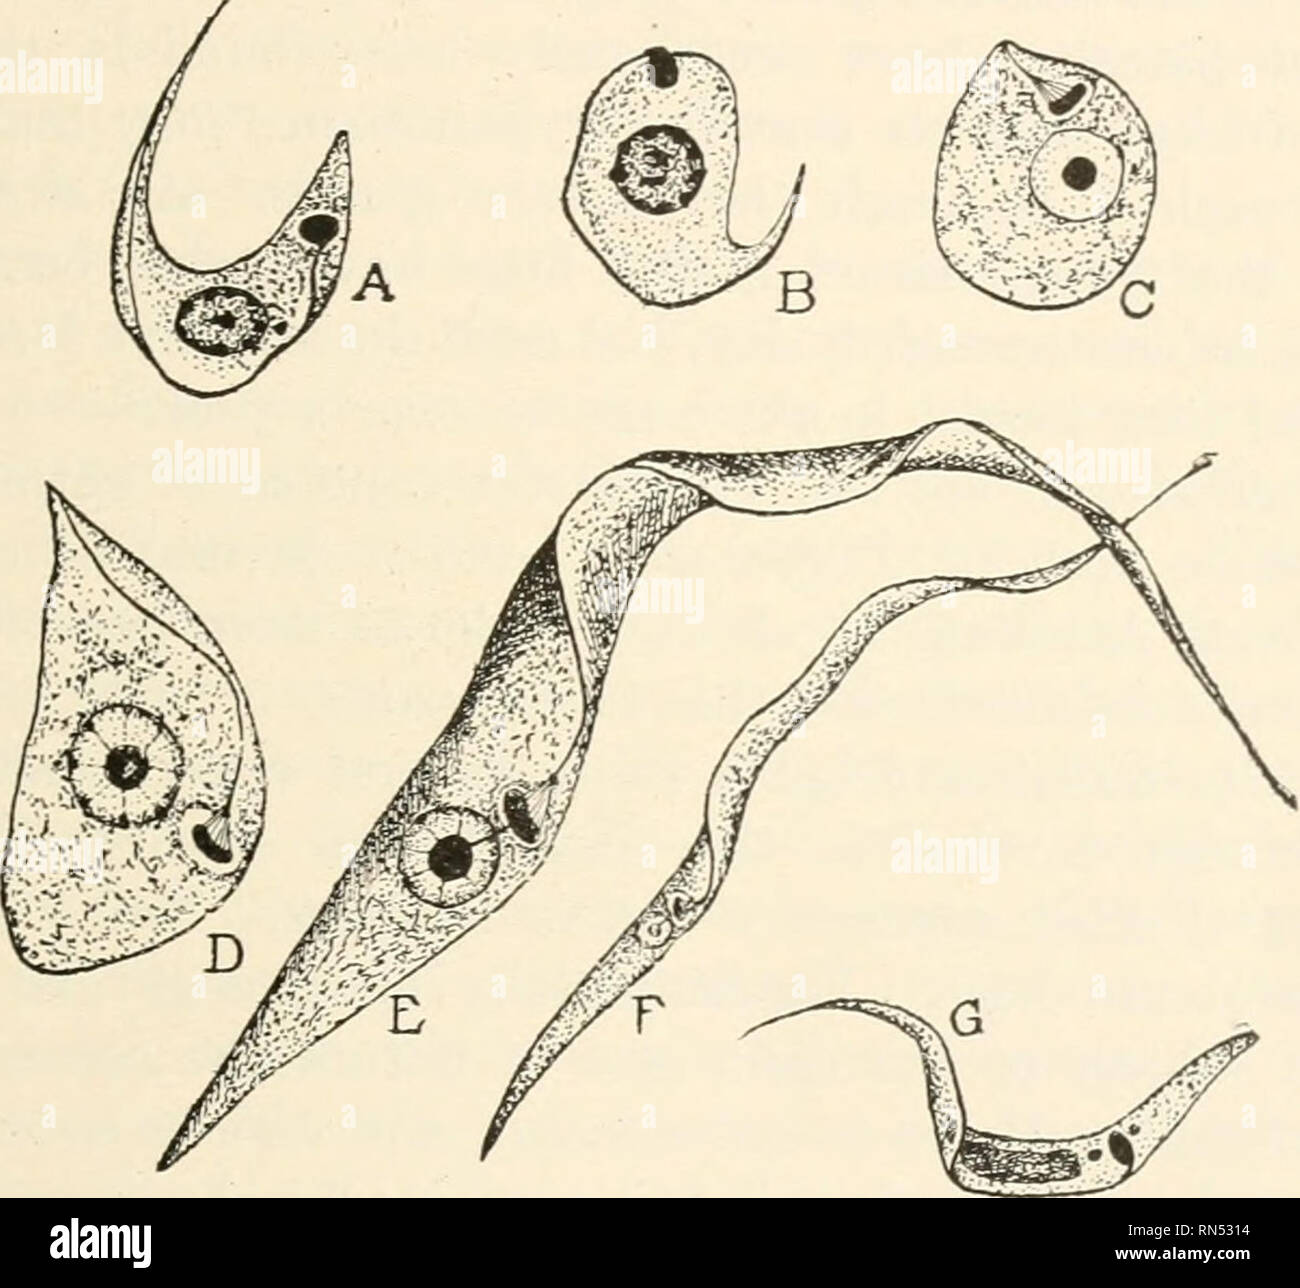 . Animal parasites and human disease. Insects as carriers of disease; Medical parasitology. CHAGAS' DISEASE — PARASITE IN BUG 111 transmitting agent of the trypanosome. A few liours after a bug has fed on infected blood the trypanosomes begin to change form in the midgut, becoming round and Leishma7iia-like in form, losing the flagellum and undulating membrane (Fig. 28A, B and C.) Then comes a period of very rapid increase in number, the parasites gradually pushing backward toward the hindgut by sheer multiplication. After about two days Crithidia forms begin to develop and become numerous in  - Stock Image